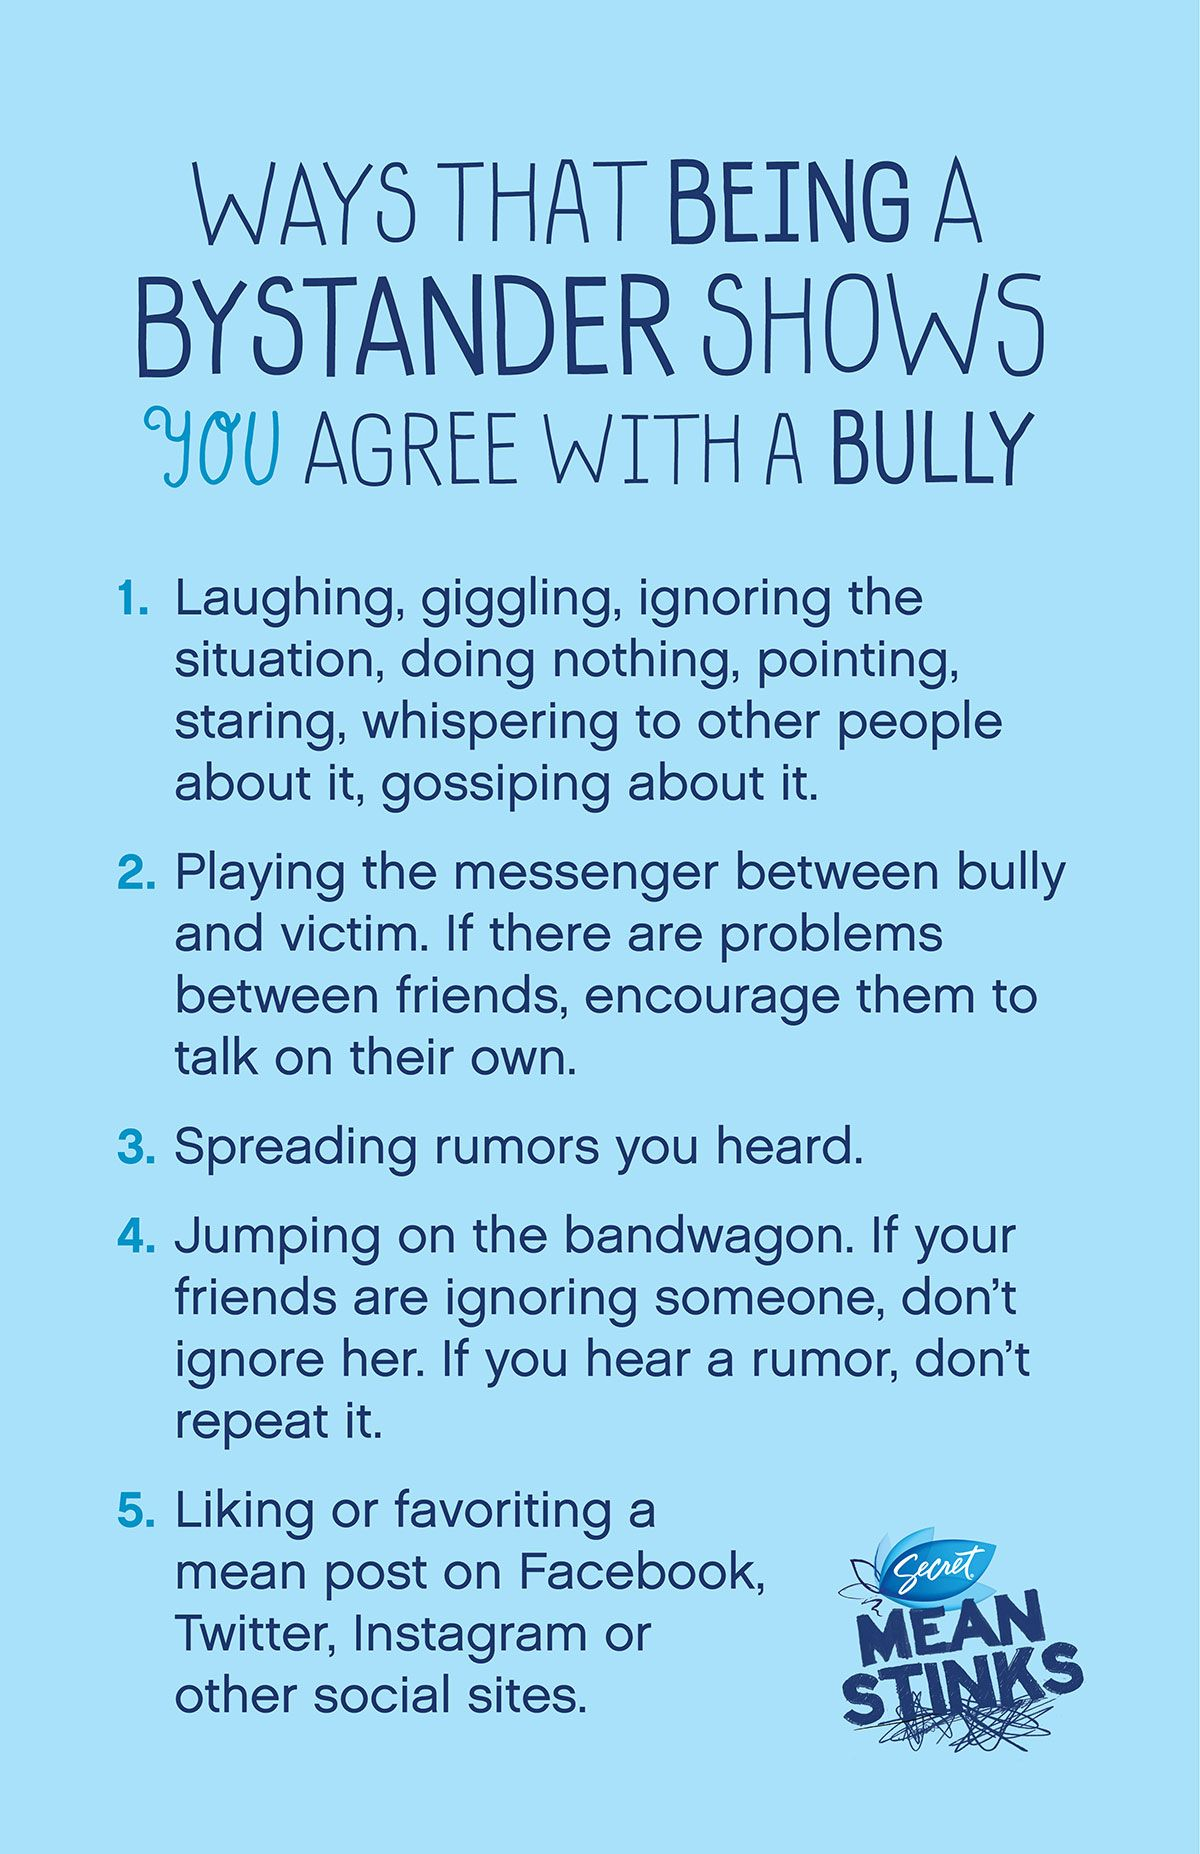 bullying and positive images